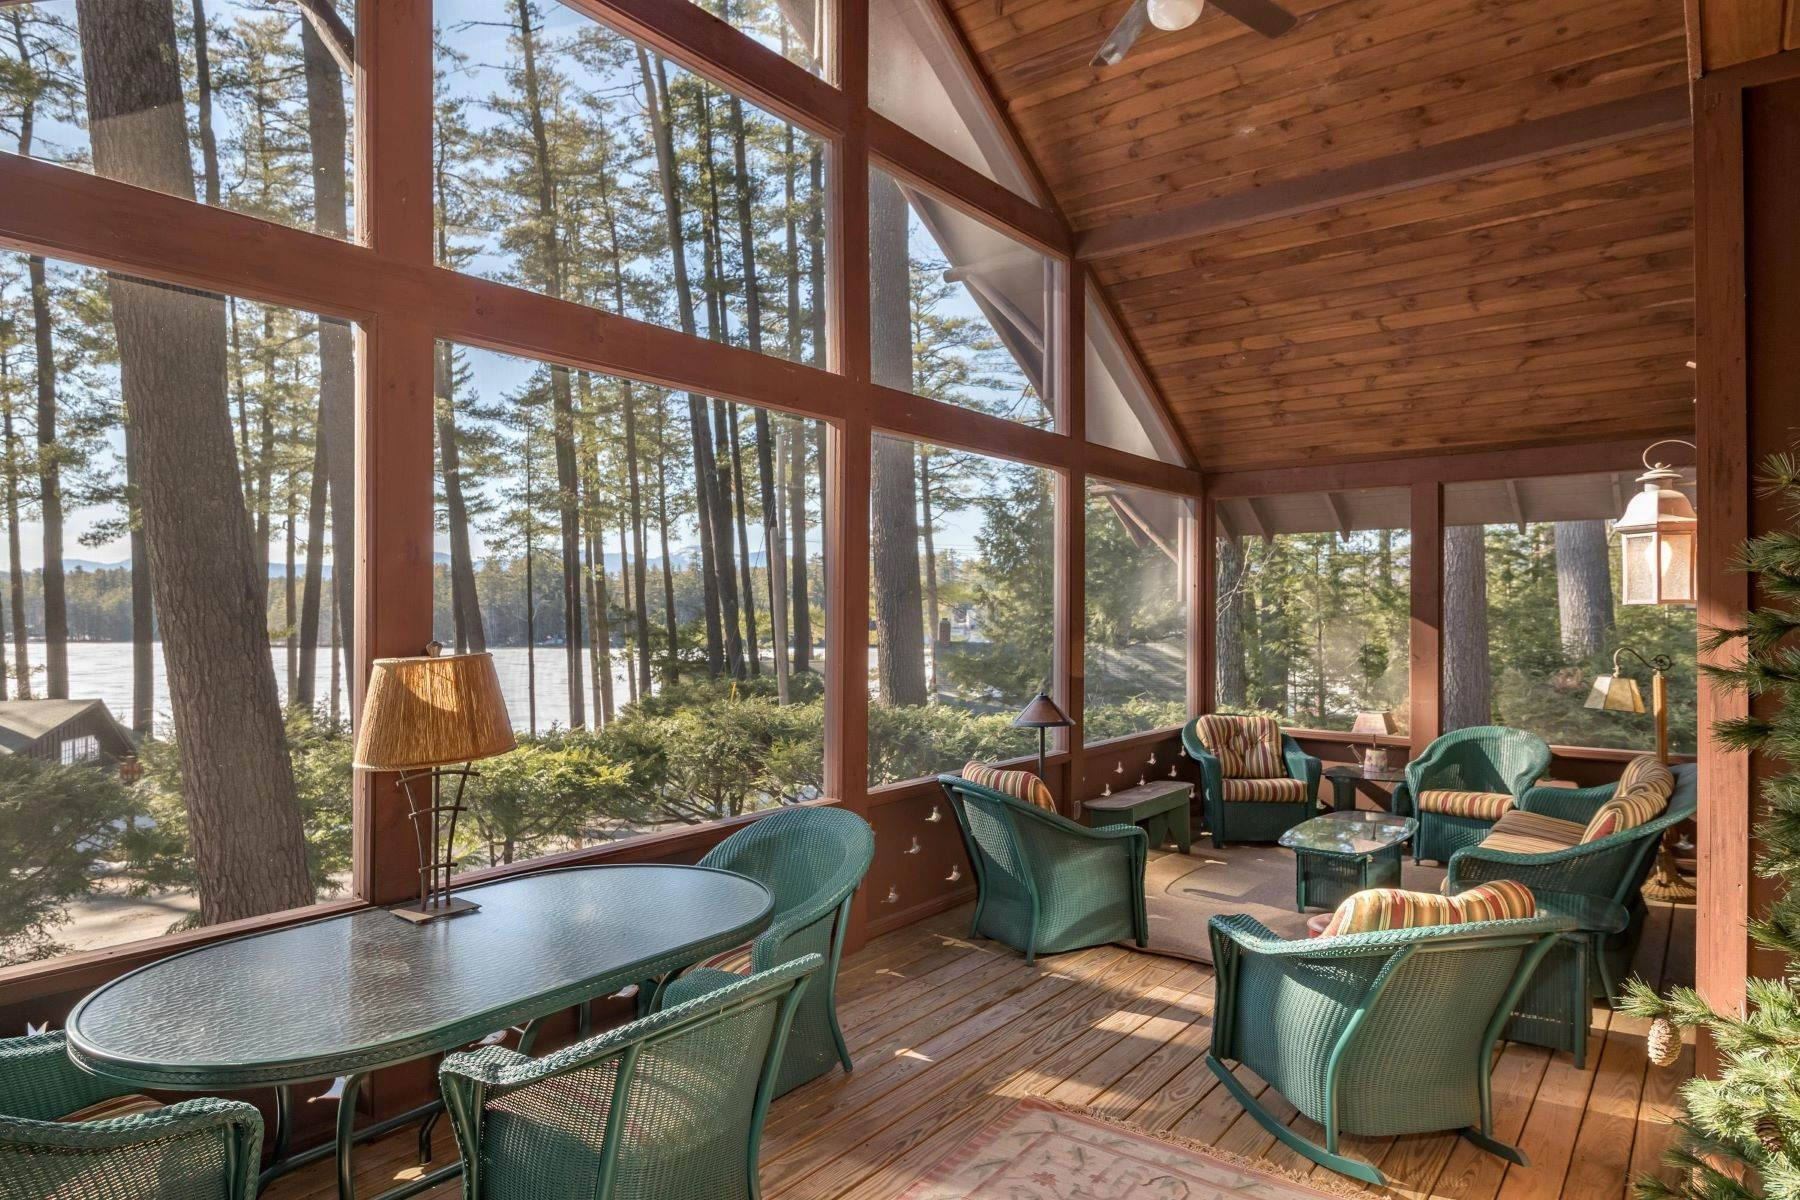 Property for Sale at Lovell, ME 04051